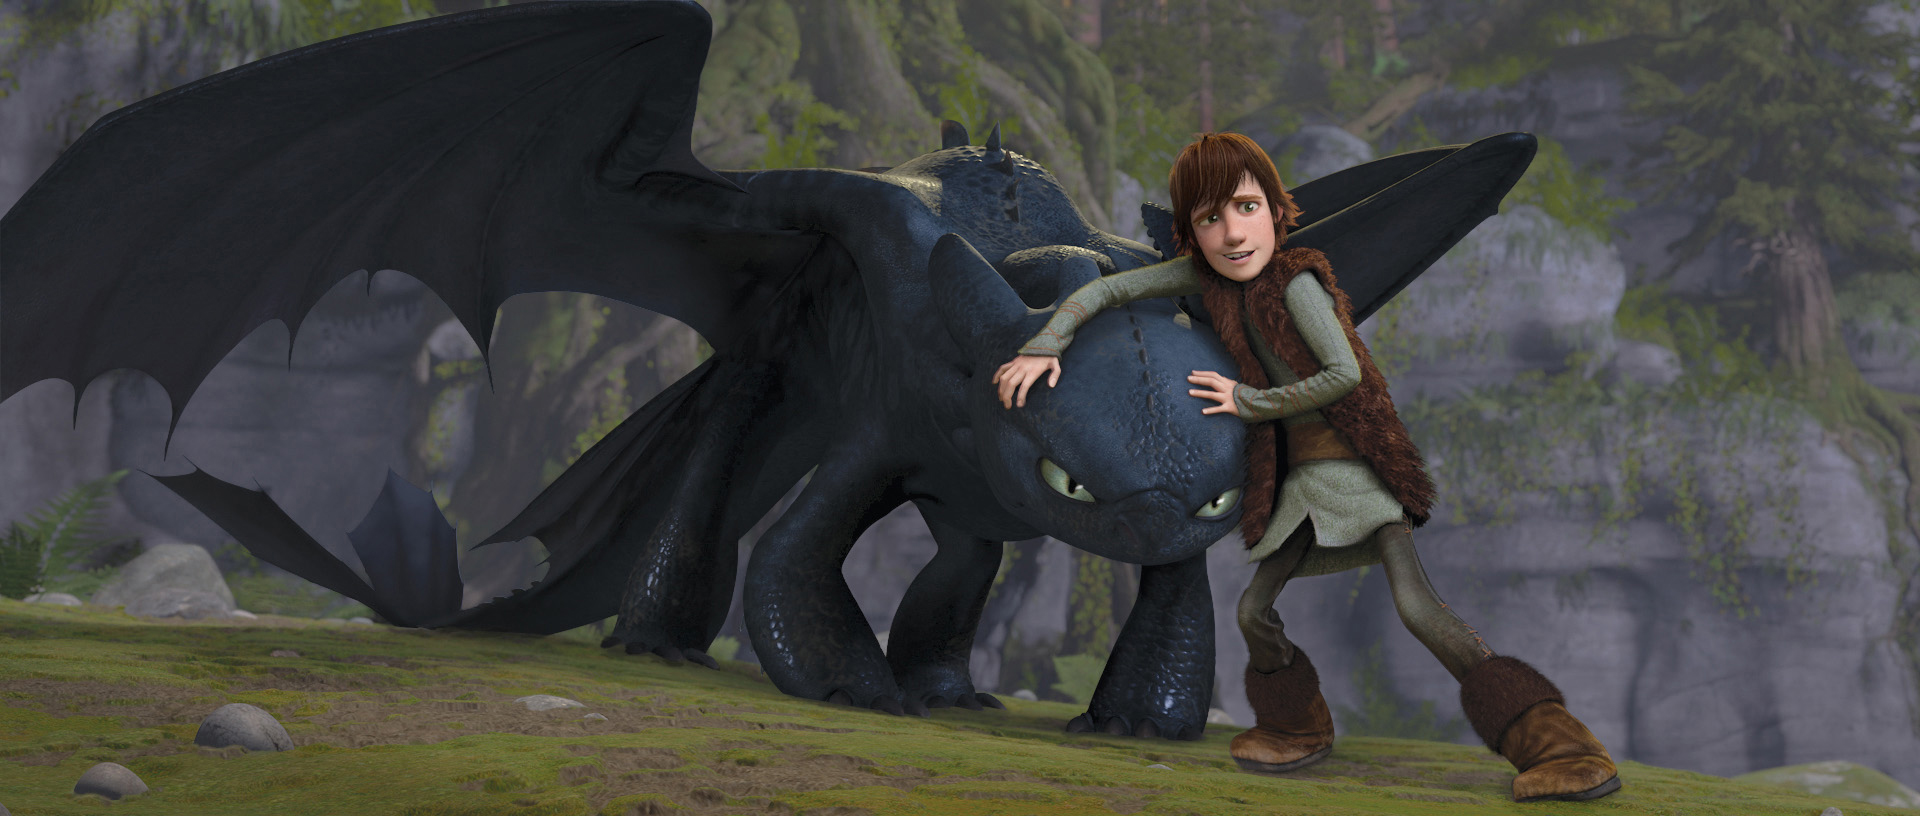 How to Train Your Dragon : Character Relationships ...